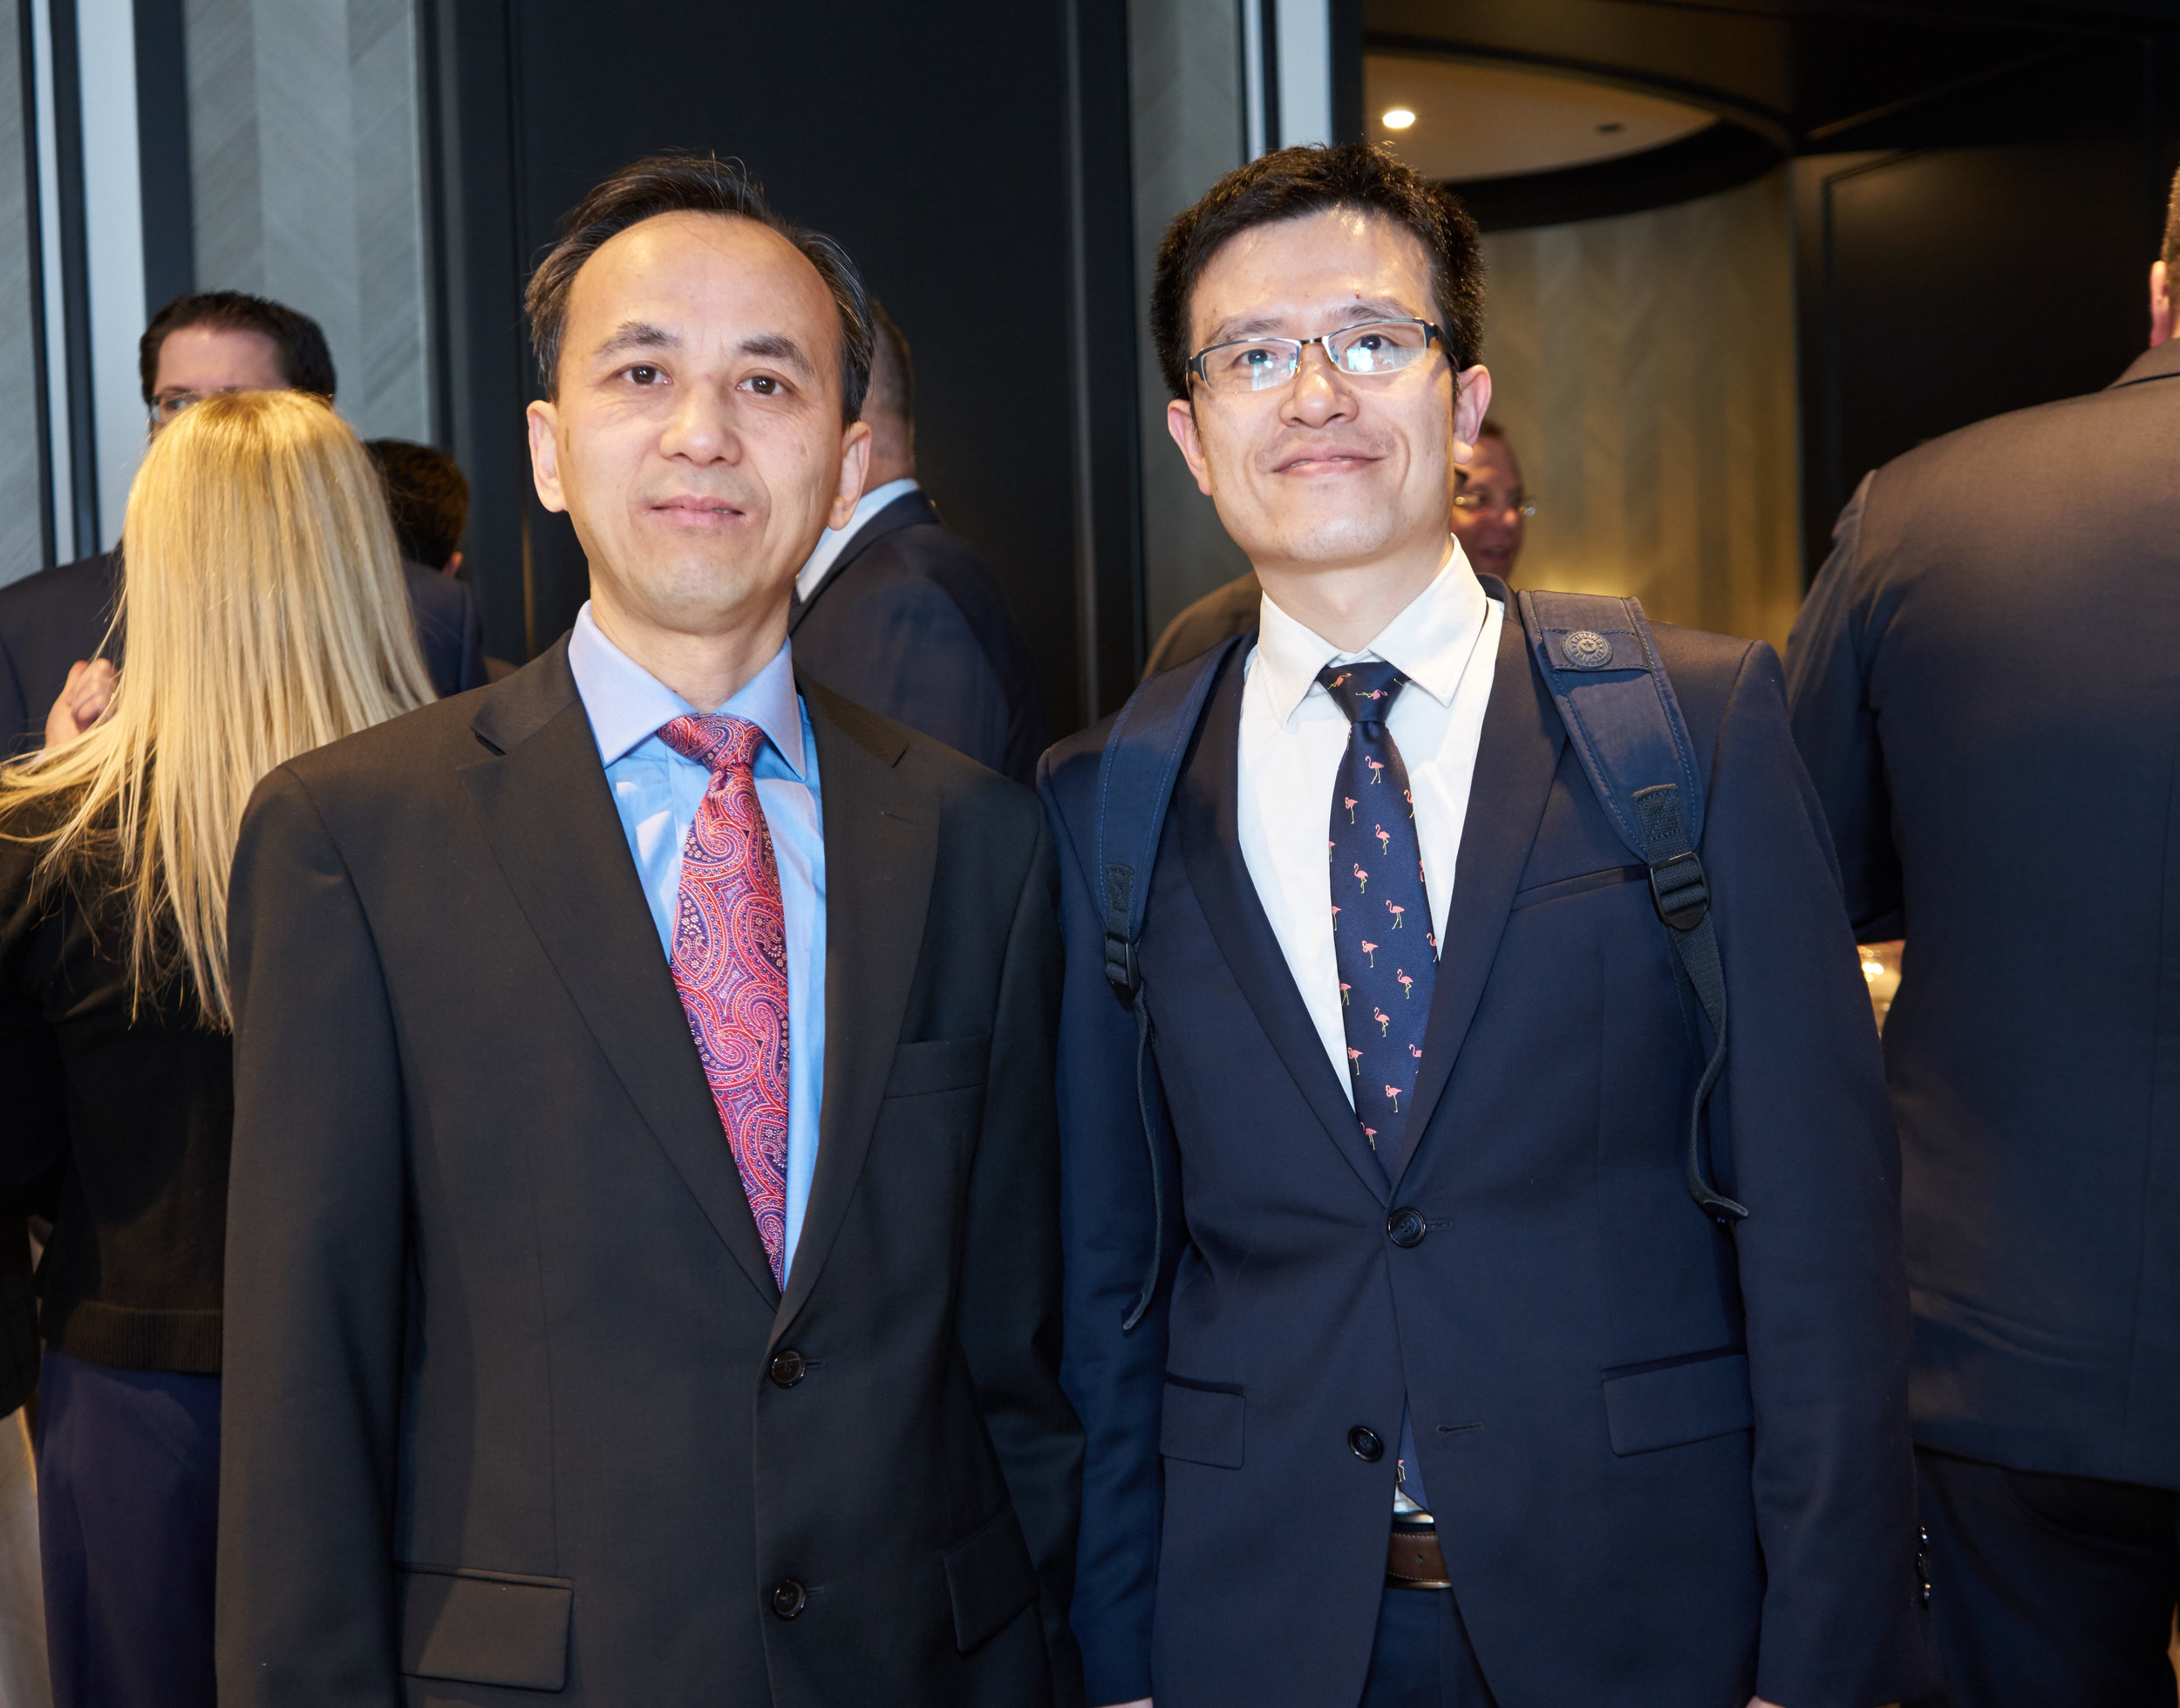 Jun Liu with Xiao Jie Sun, Vice Commercial Consul of the People's Republic of China